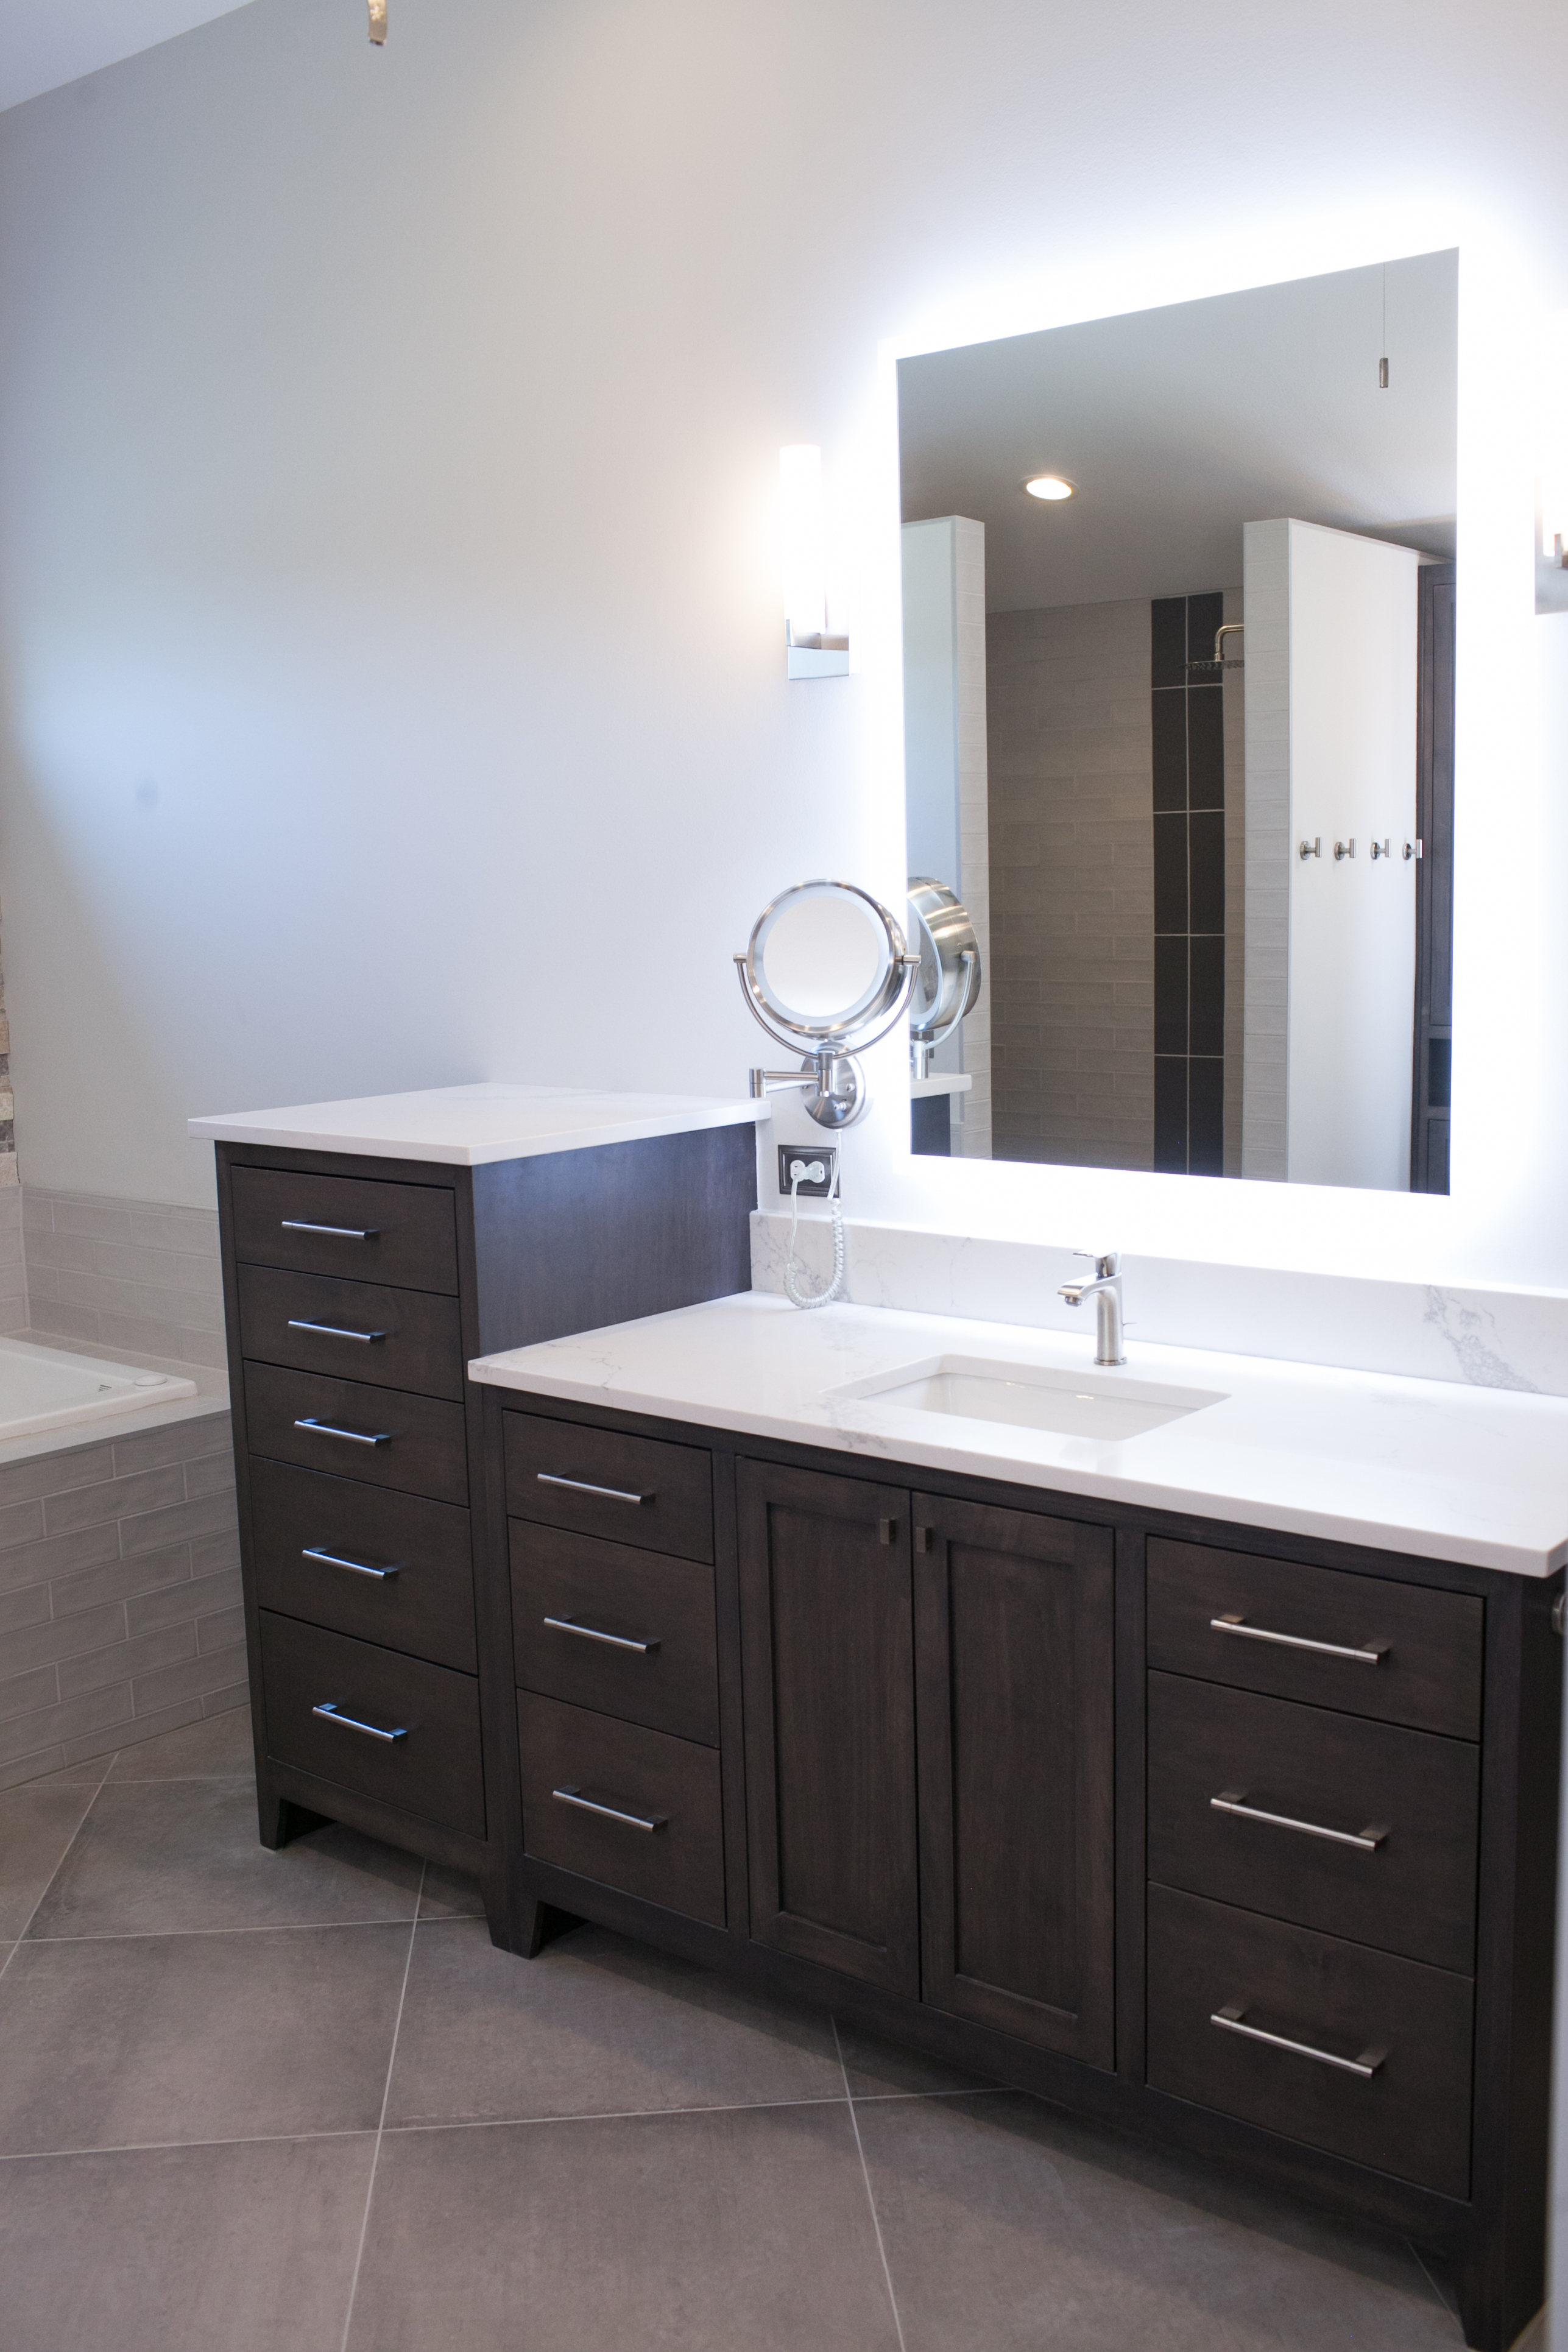 Custom vanities in Master bath addition